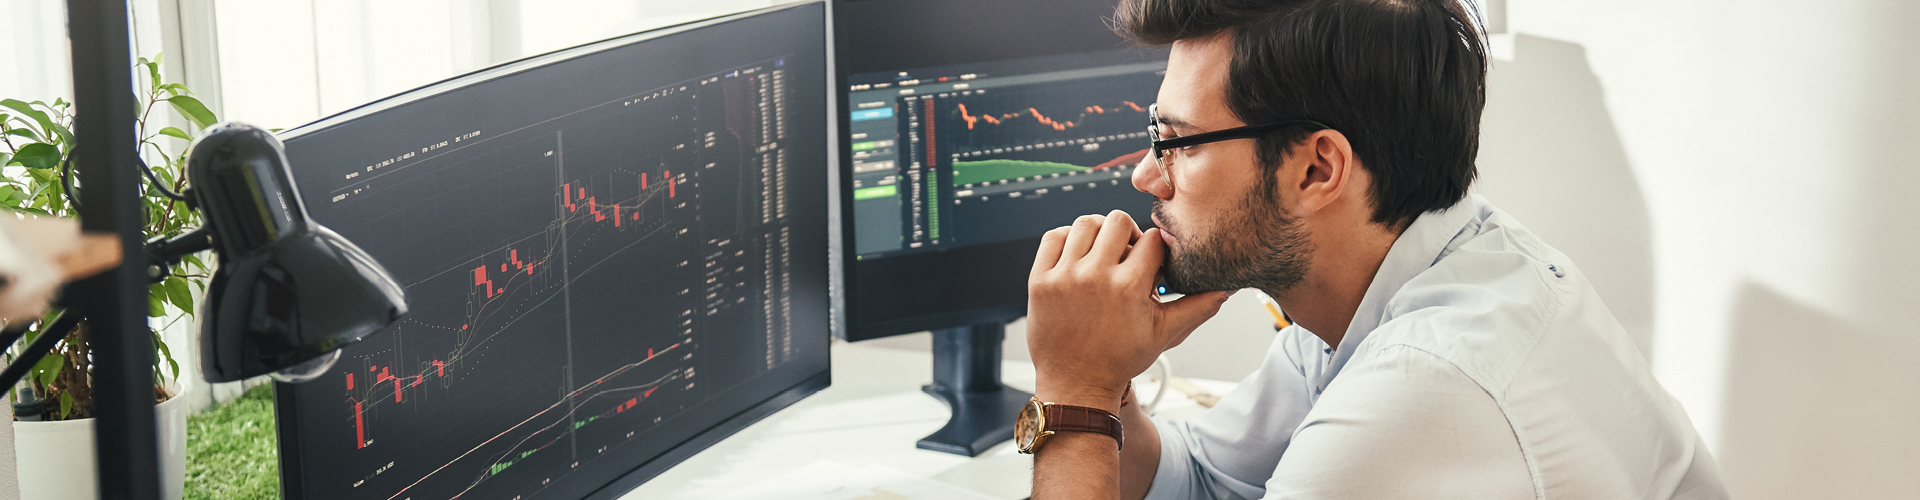 Investment analyst looking at data chart on two computer screens